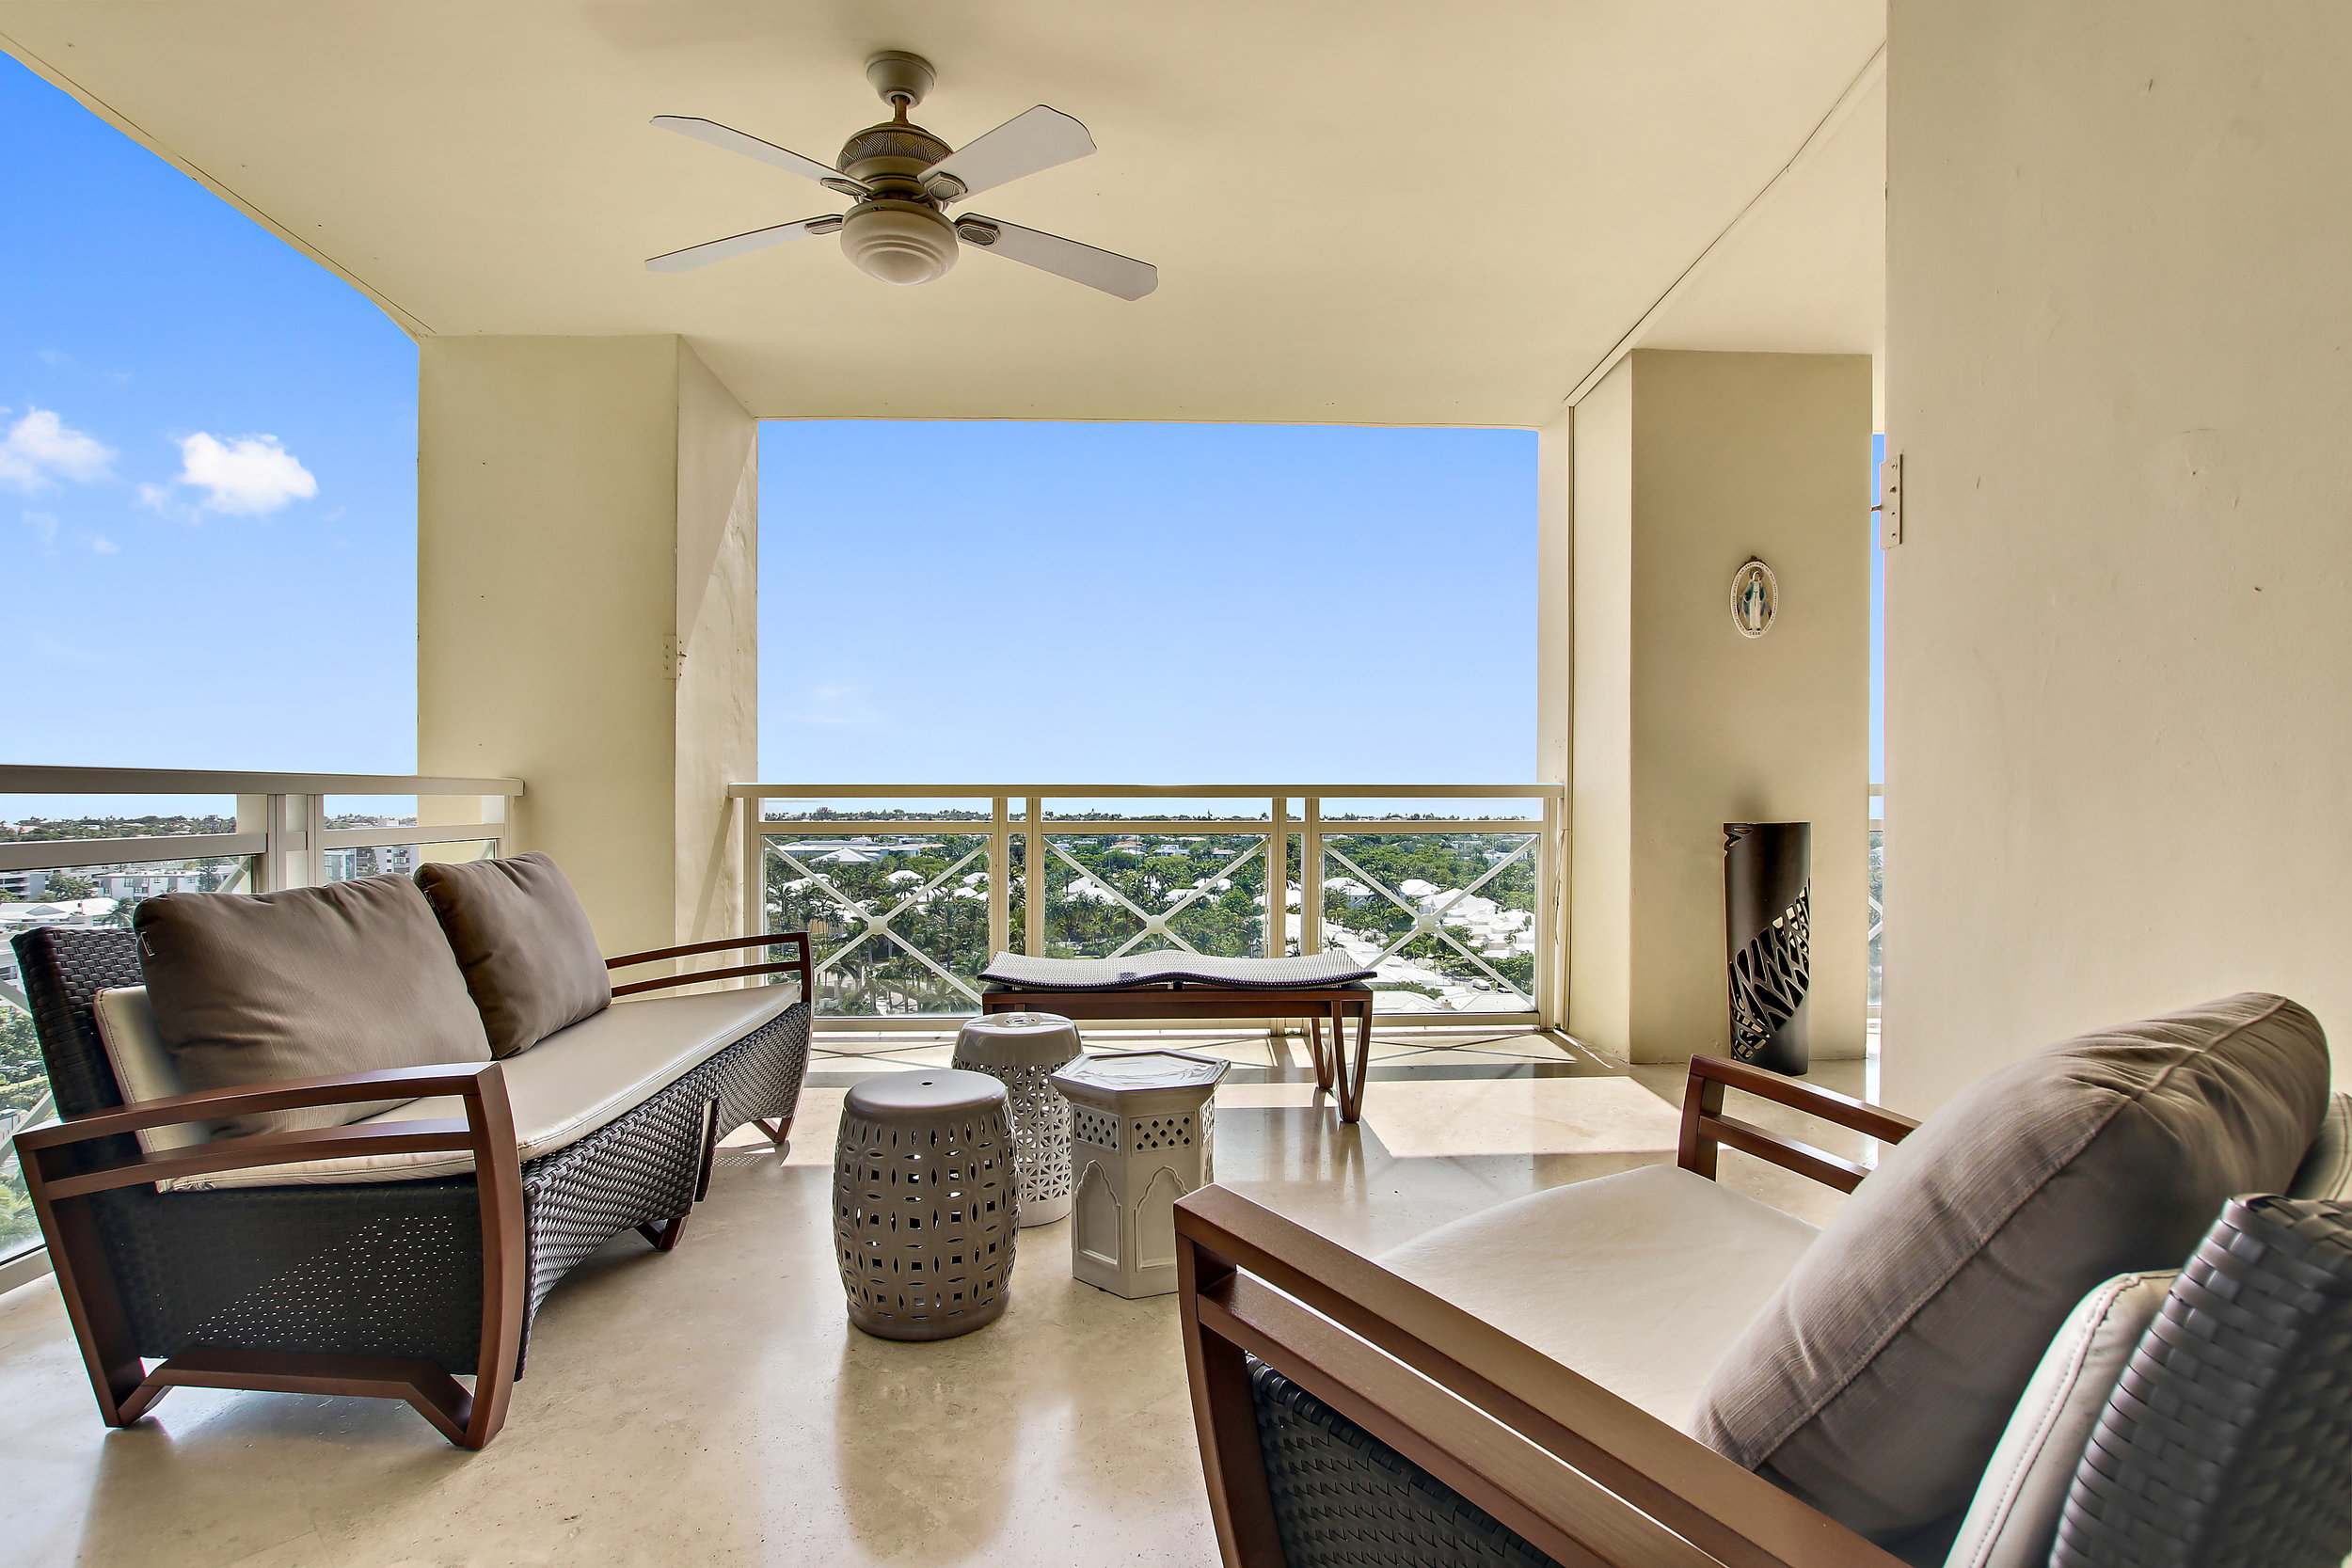 Step Inside An Exquisite Mansion In The Sky Penthouse Which Just Hit The Market In Key Biscayne's Grand Bay